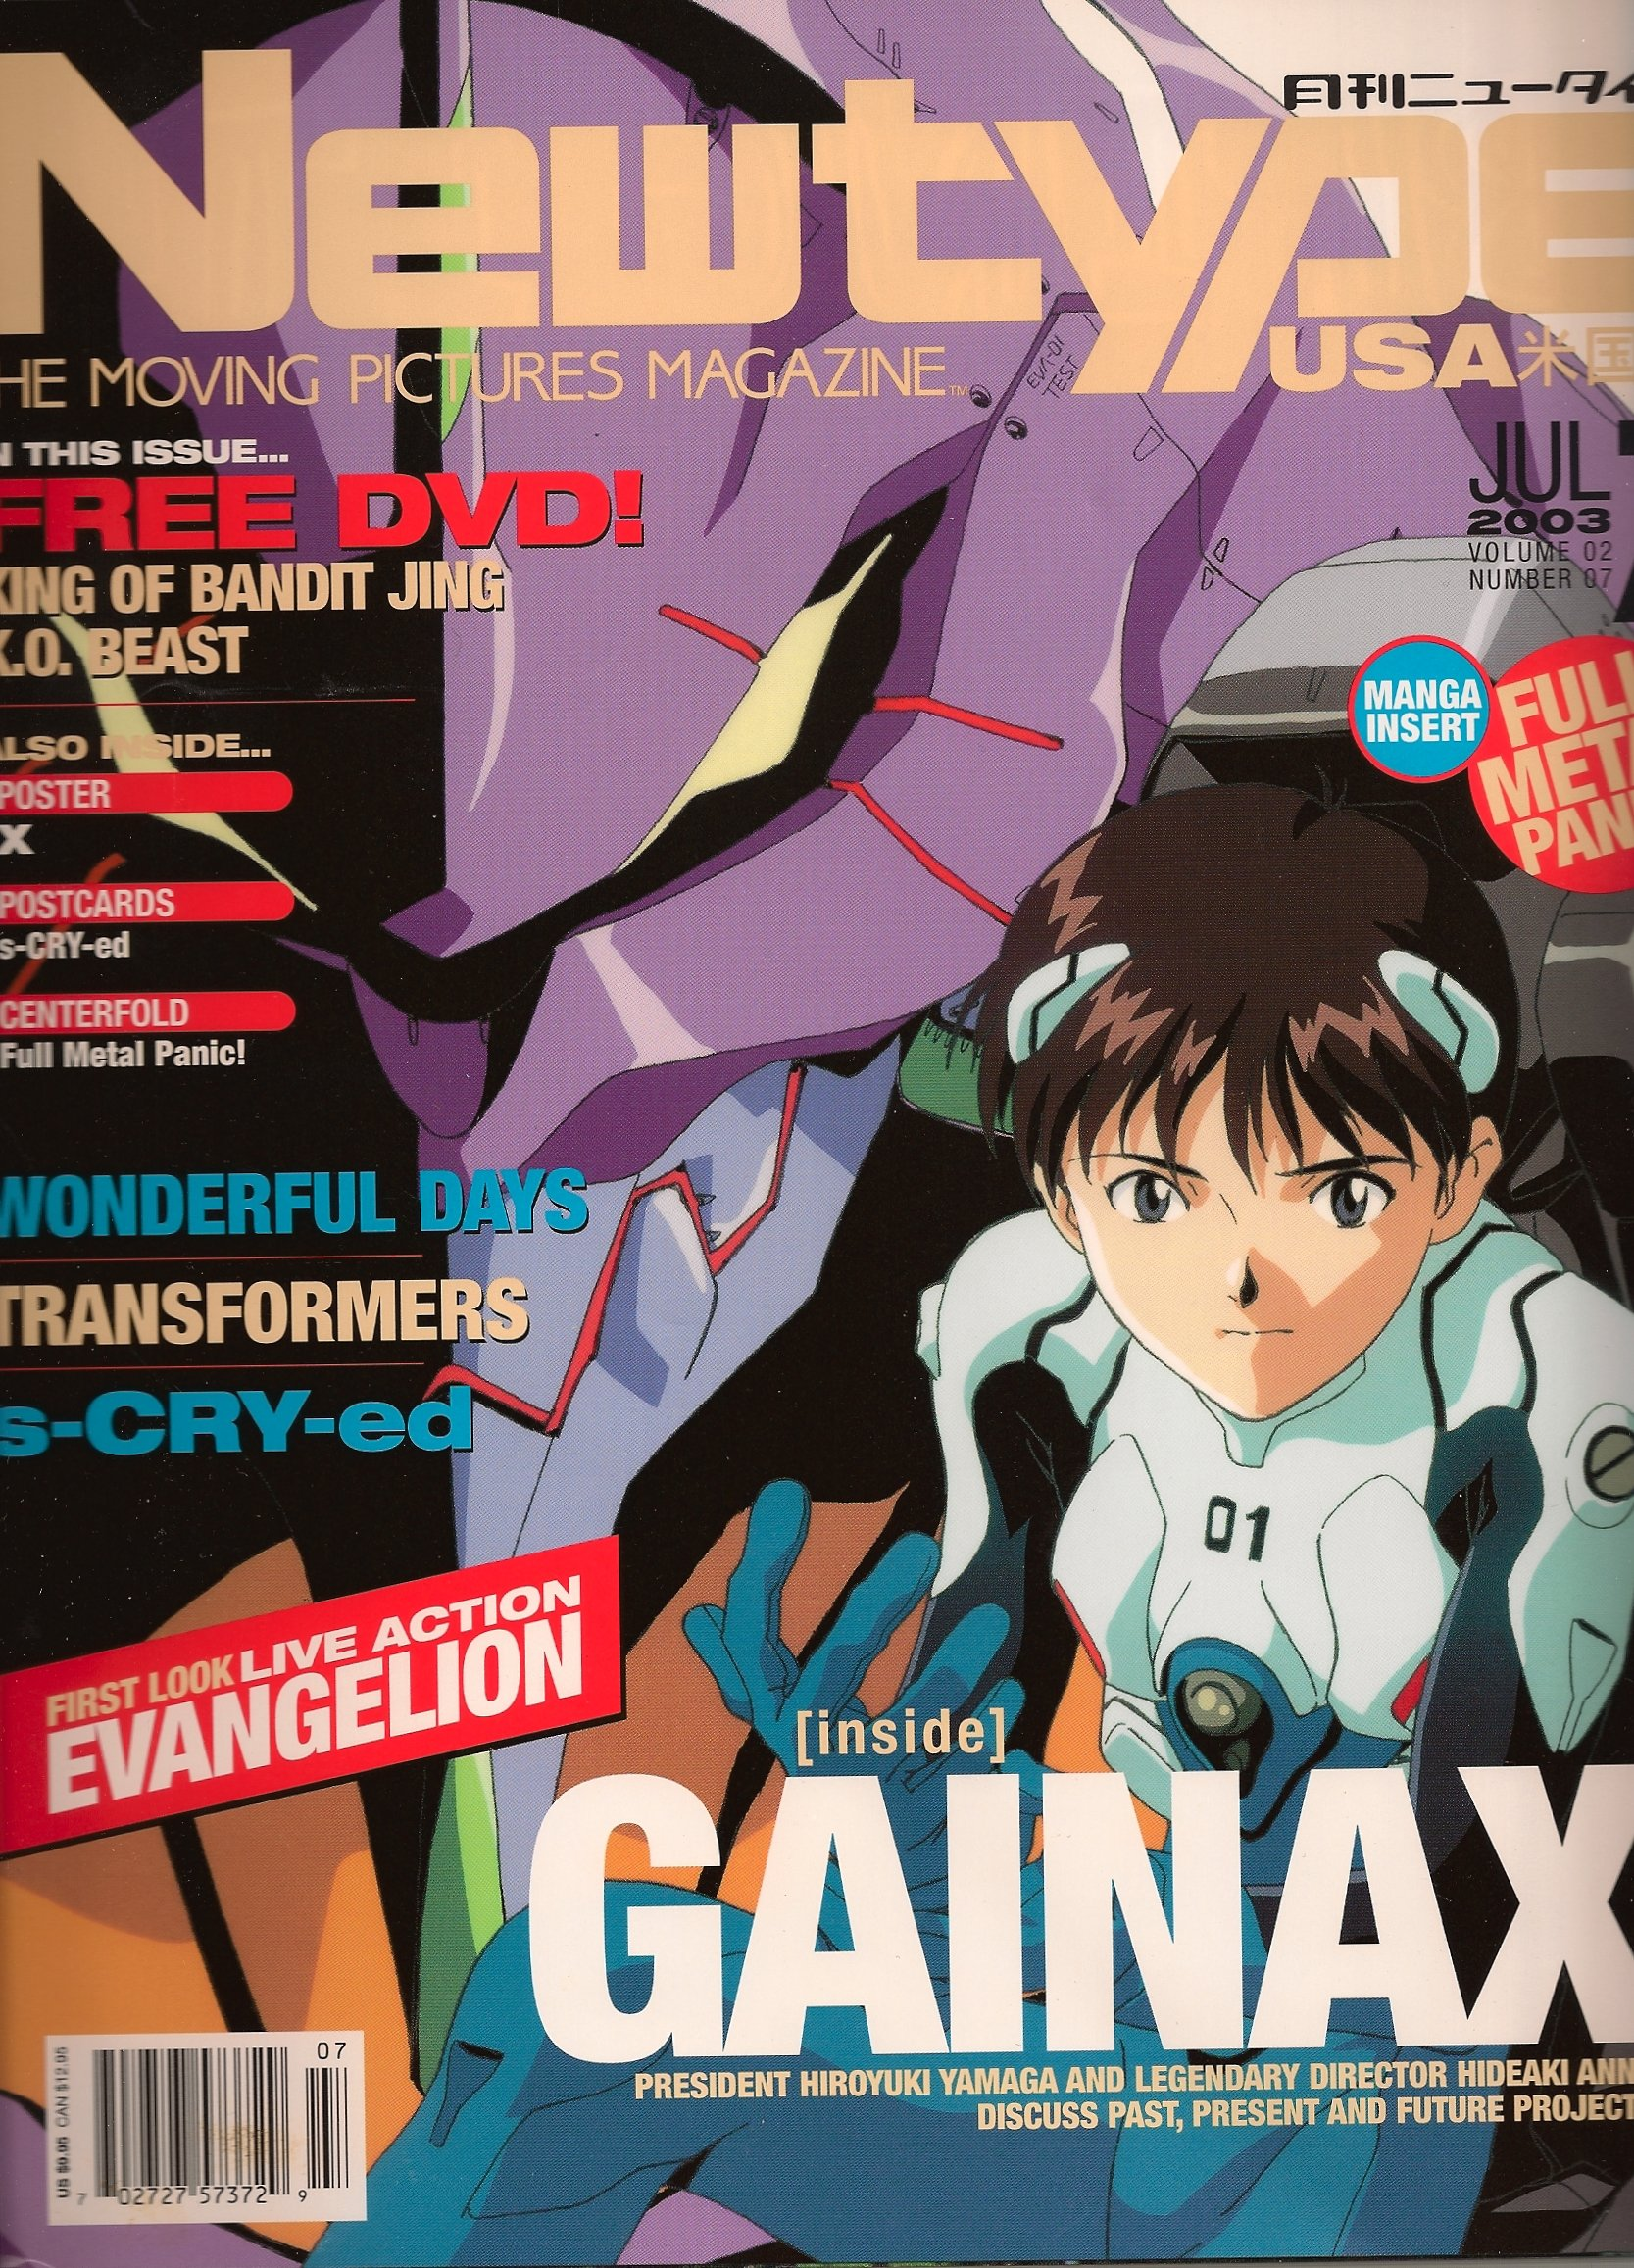 Newtype Usa: the Moving Pictures Magazine {Volume 2, Number 7, July 2003} PDF ePub book